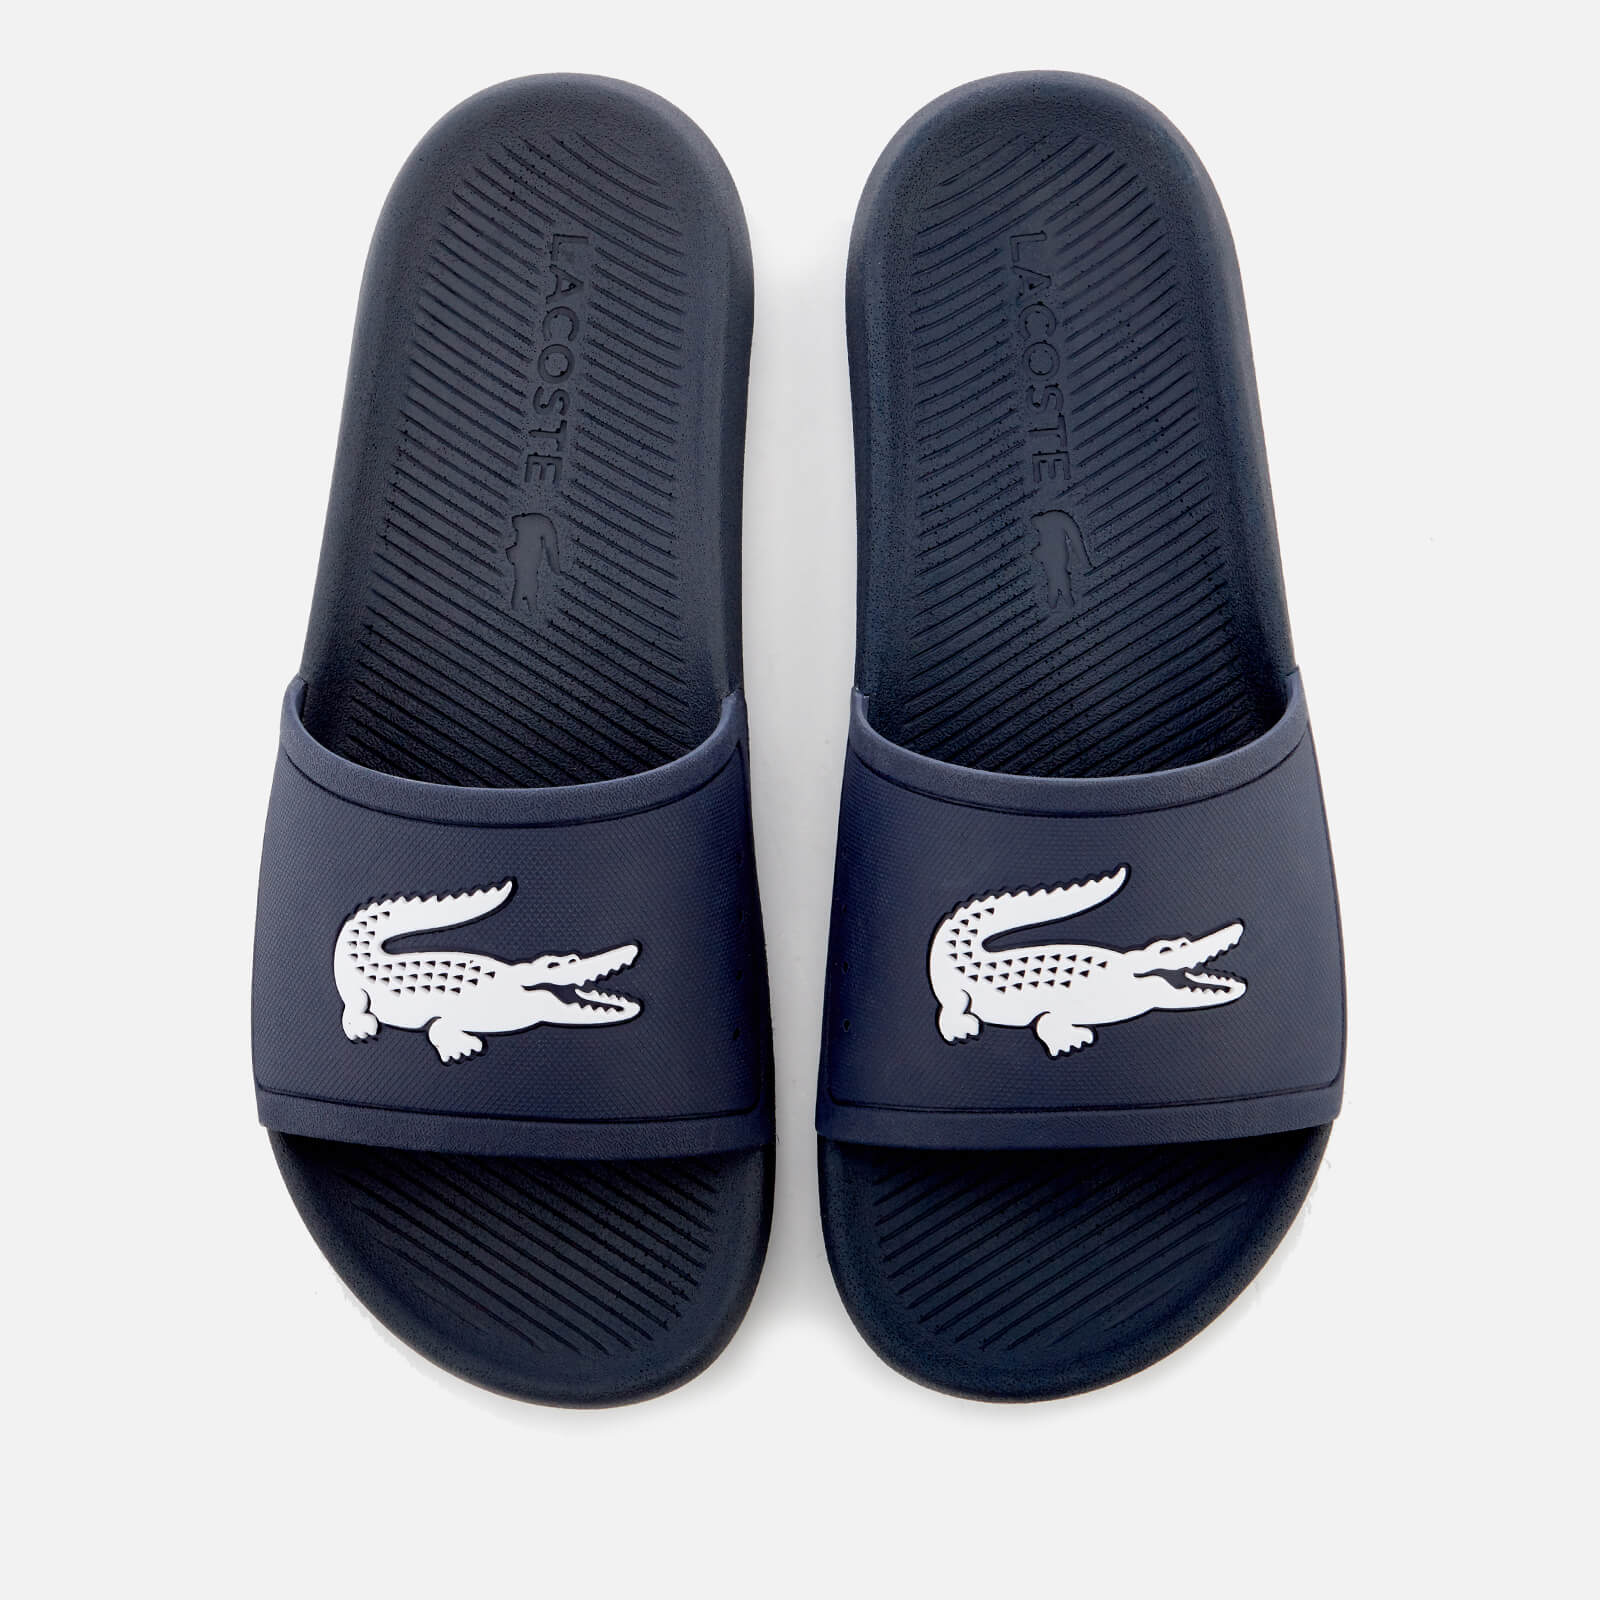 9d4d92fa5 Lacoste Men s Croco Slide 119 1 Sandals - Navy White Mens Footwear ...